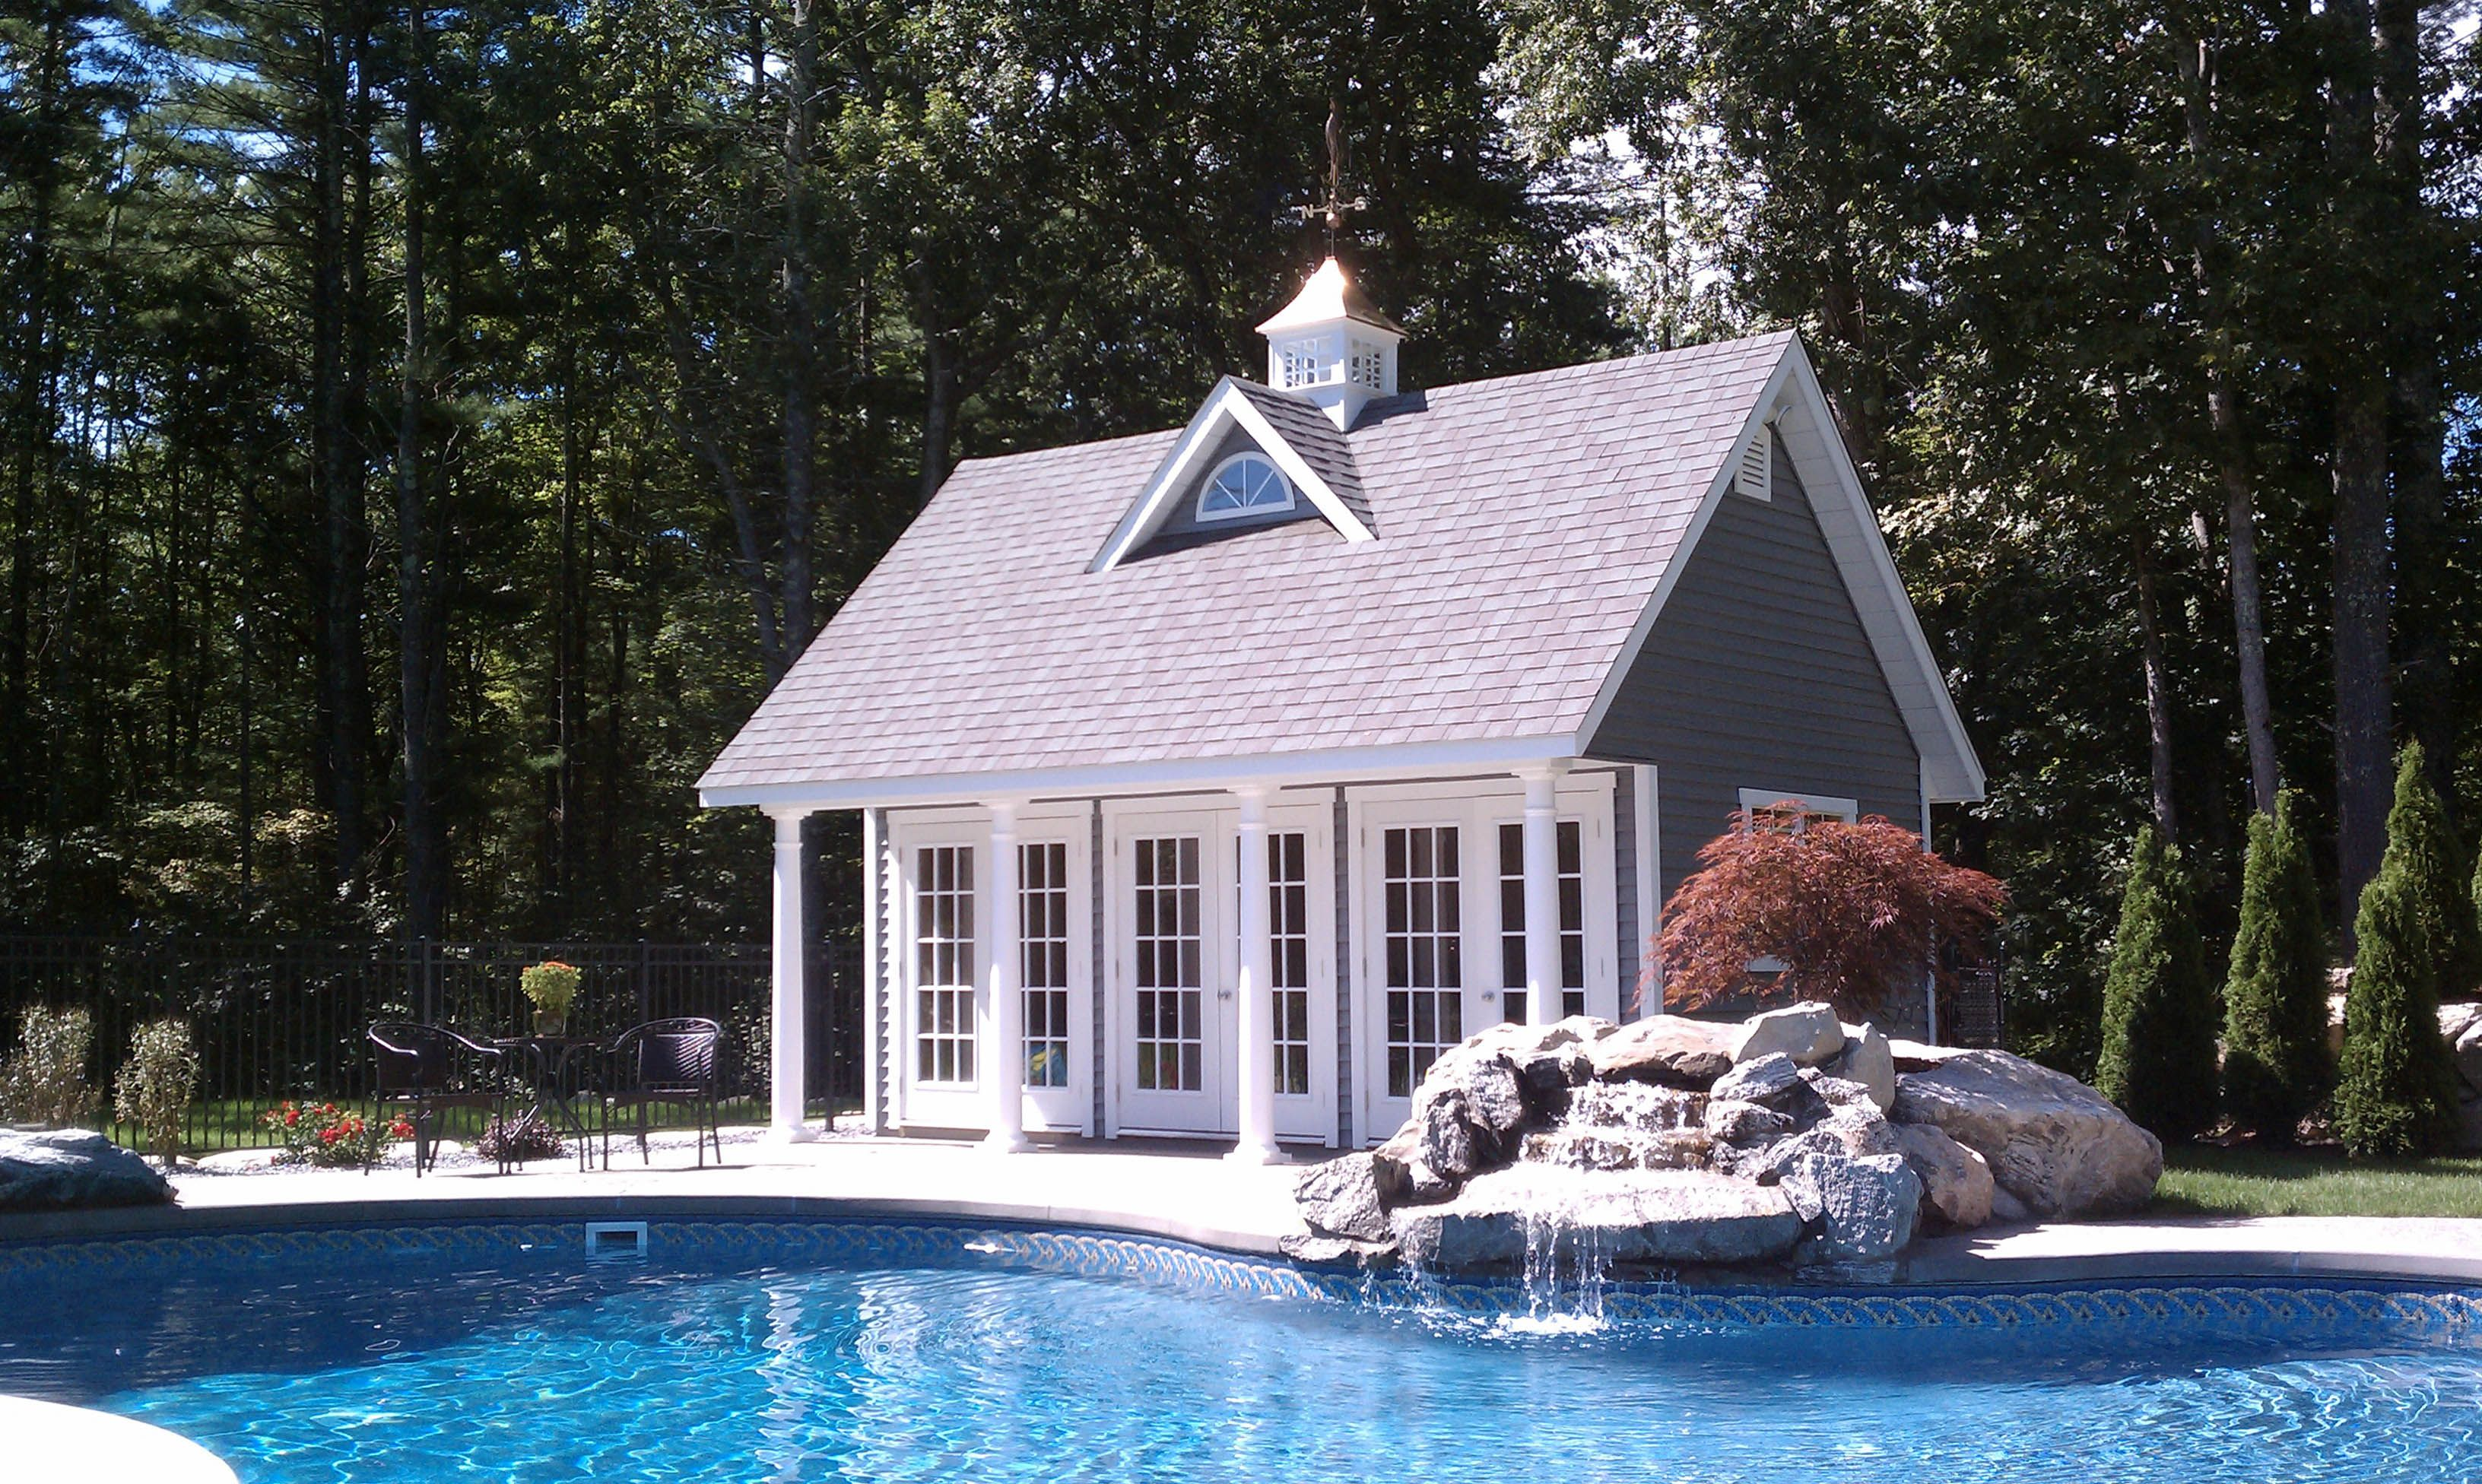 Reeds ferry sheds 14x20 elite pool house with duratemp for Pool house cabana